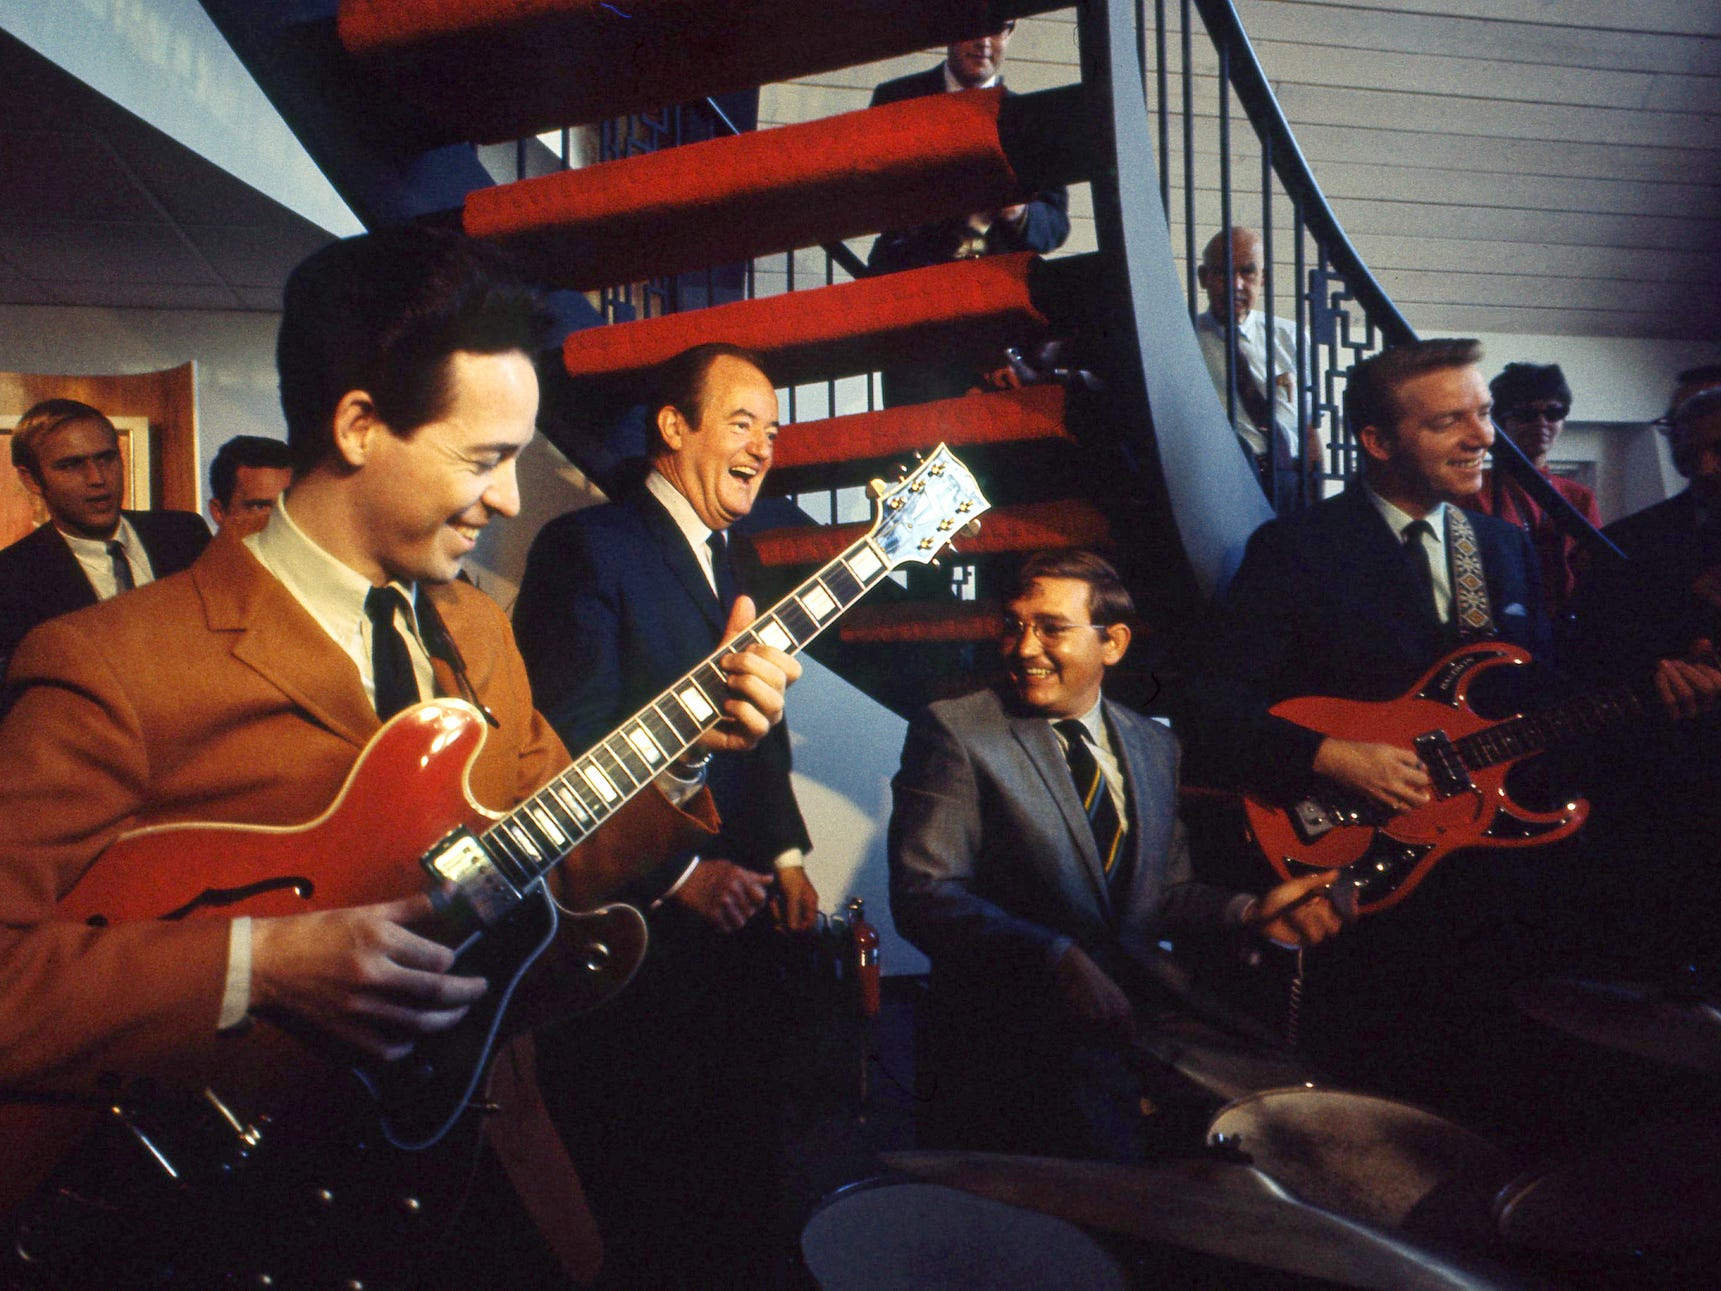 Vice President Hubert H. Humphrey, center, enjoys music during a tour of the Country Music Hall of Fame on his presidential campaign to Nashville on Oct. 1, 1968. The improvised group of musicians included Wade Phillips on guitar, Willie Ackerman on drums and Bob Browning on bass.